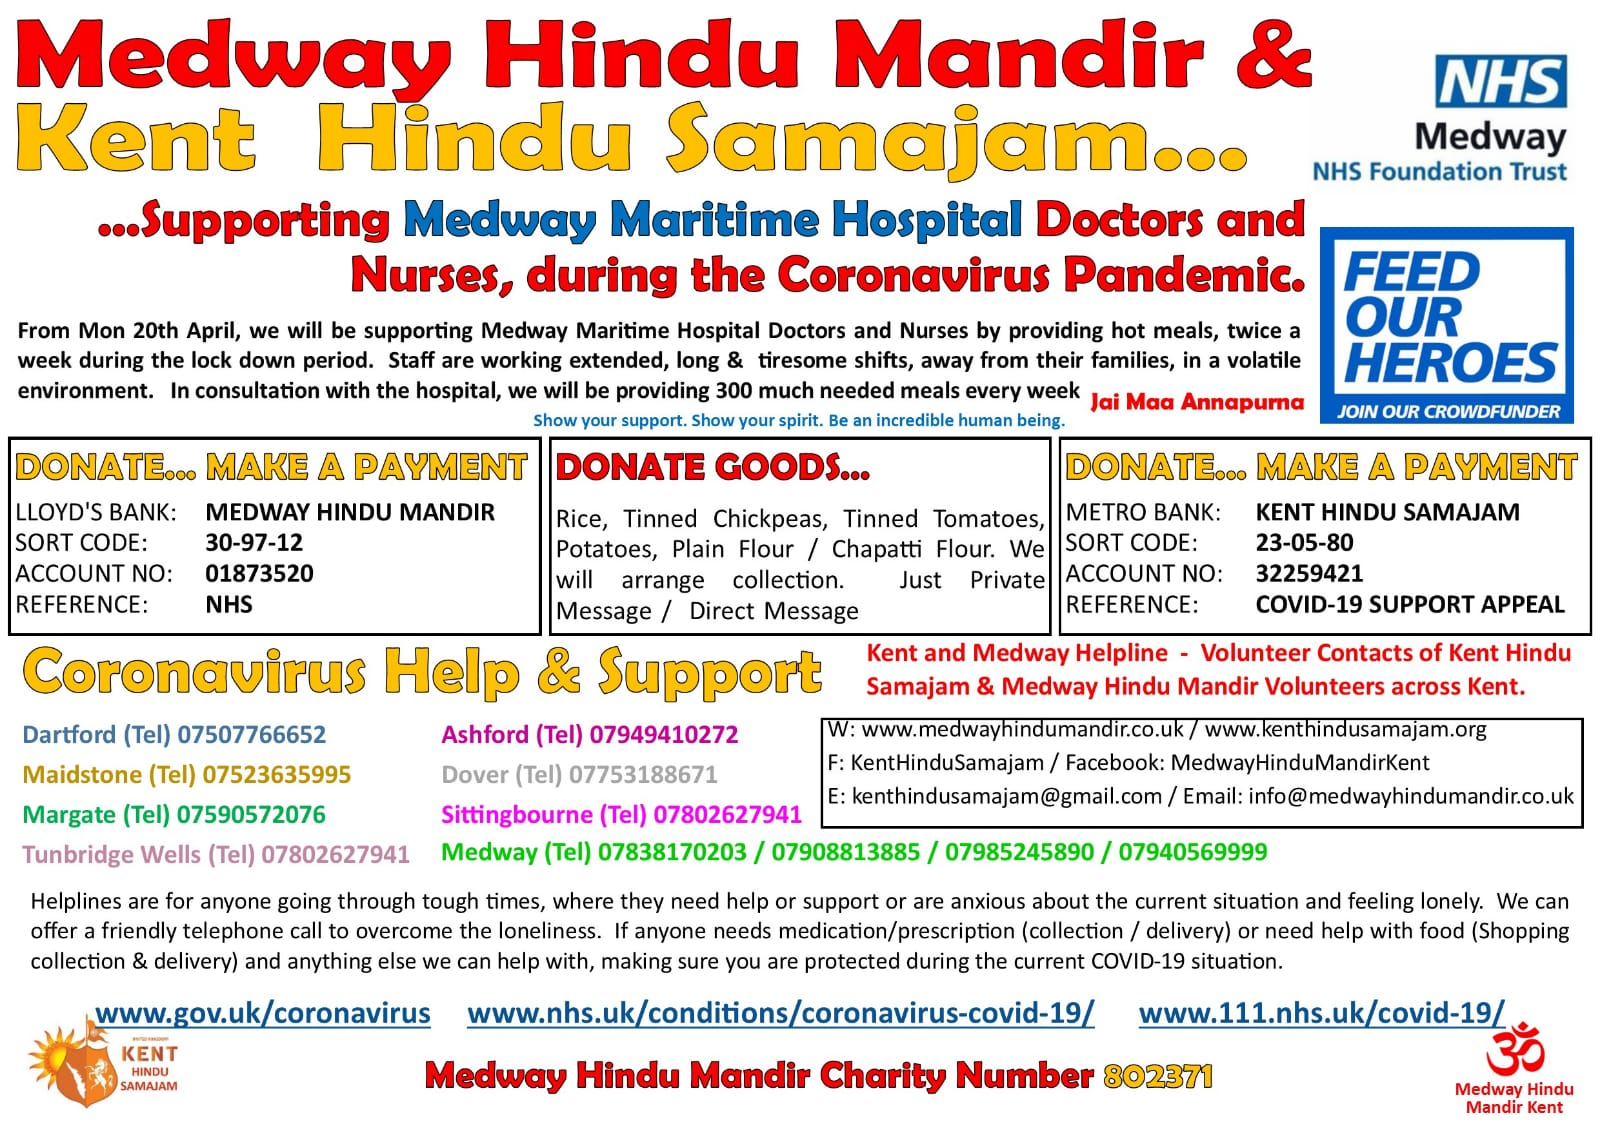 Medway Hindu Mandir & Kent Hindu Samajam are supporting Medway Maritime Hospital Doctors and Nursers